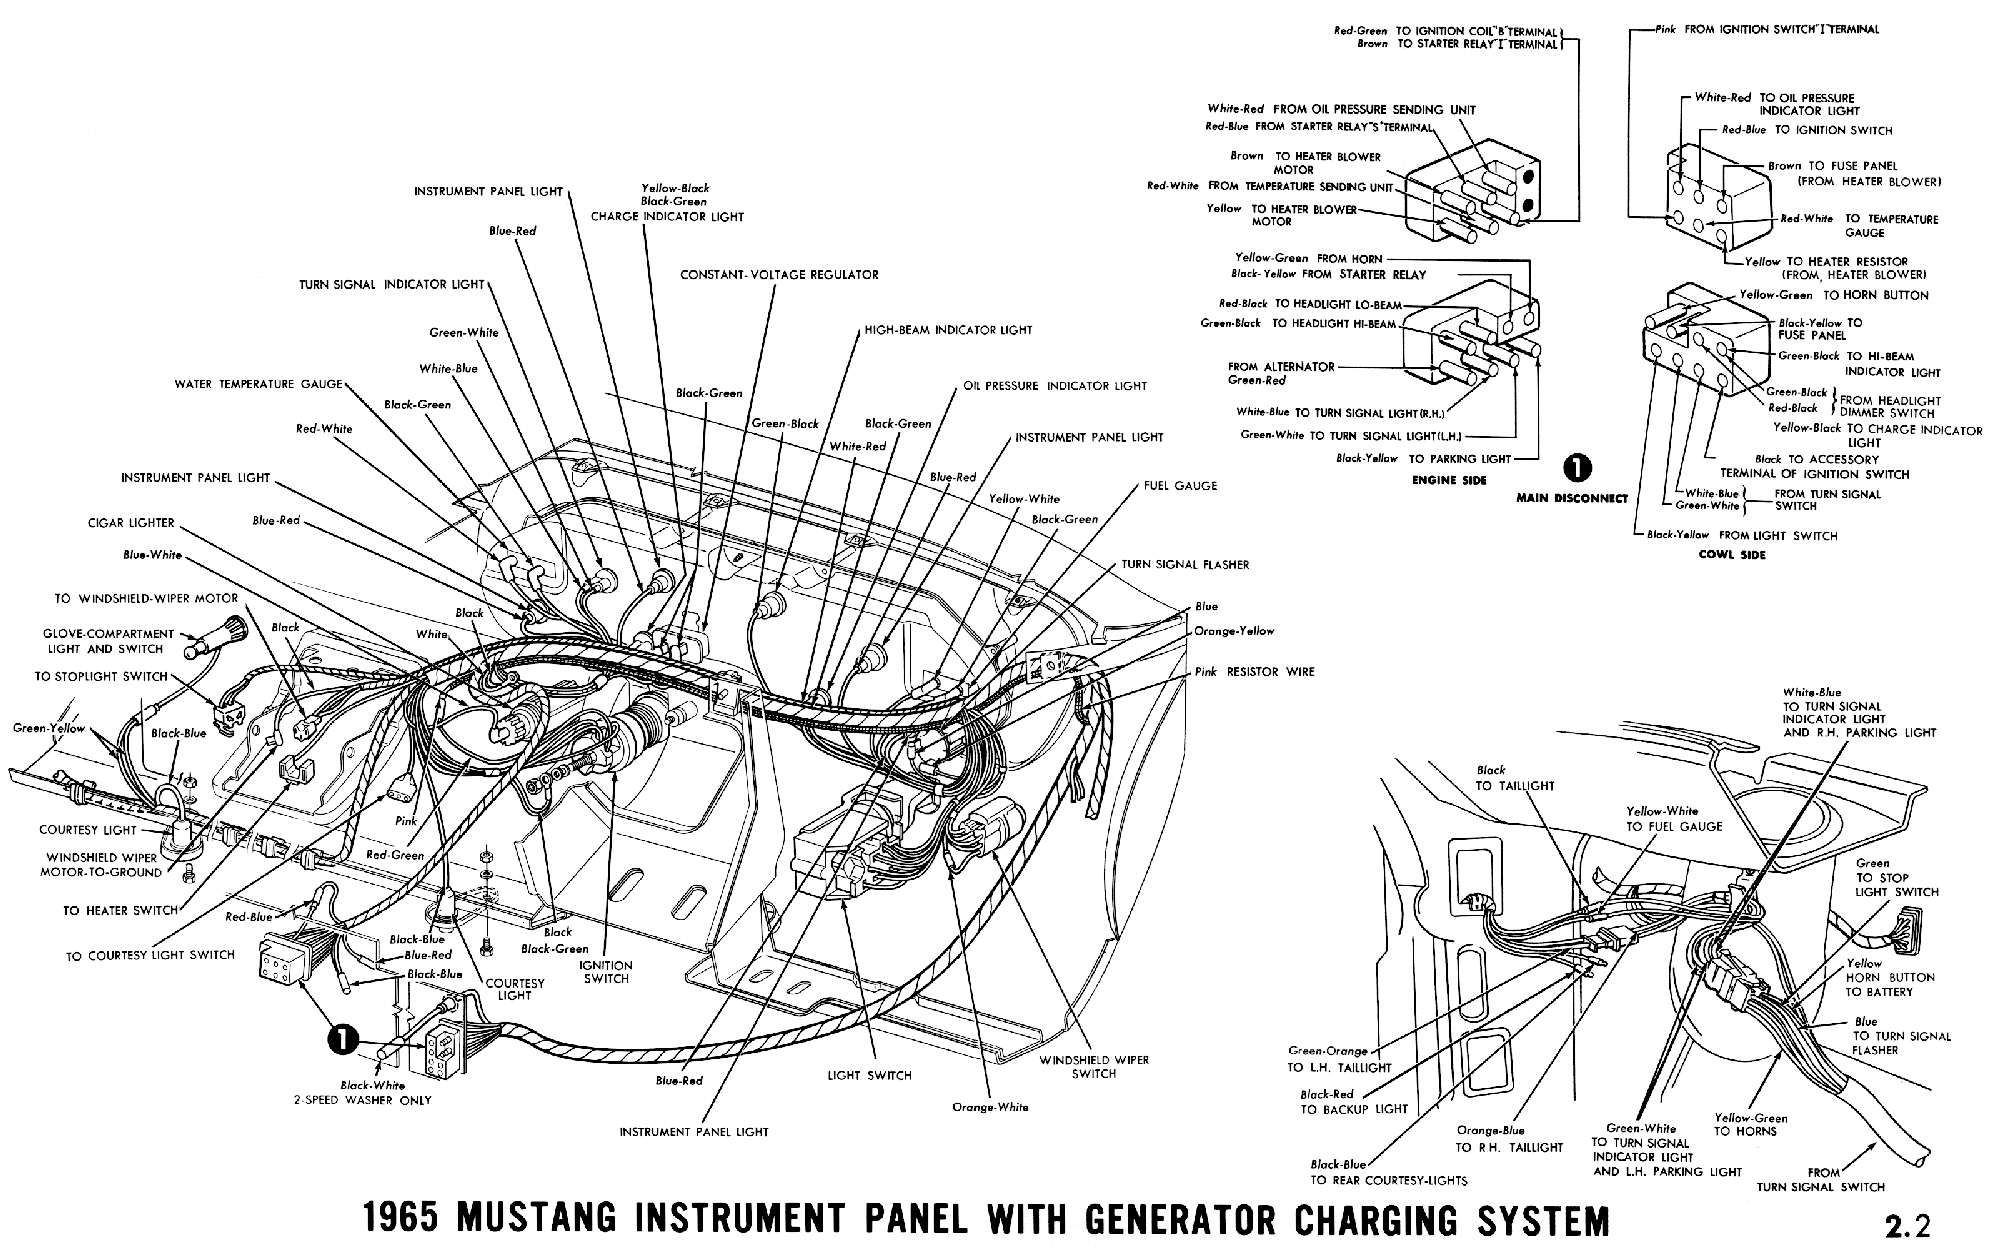 1965 mustang wiring diagrams | automotive repair | mustang ... 1964 1 2 ford mustang wiring diagrams 1967 ford mustang wiring diagrams #12